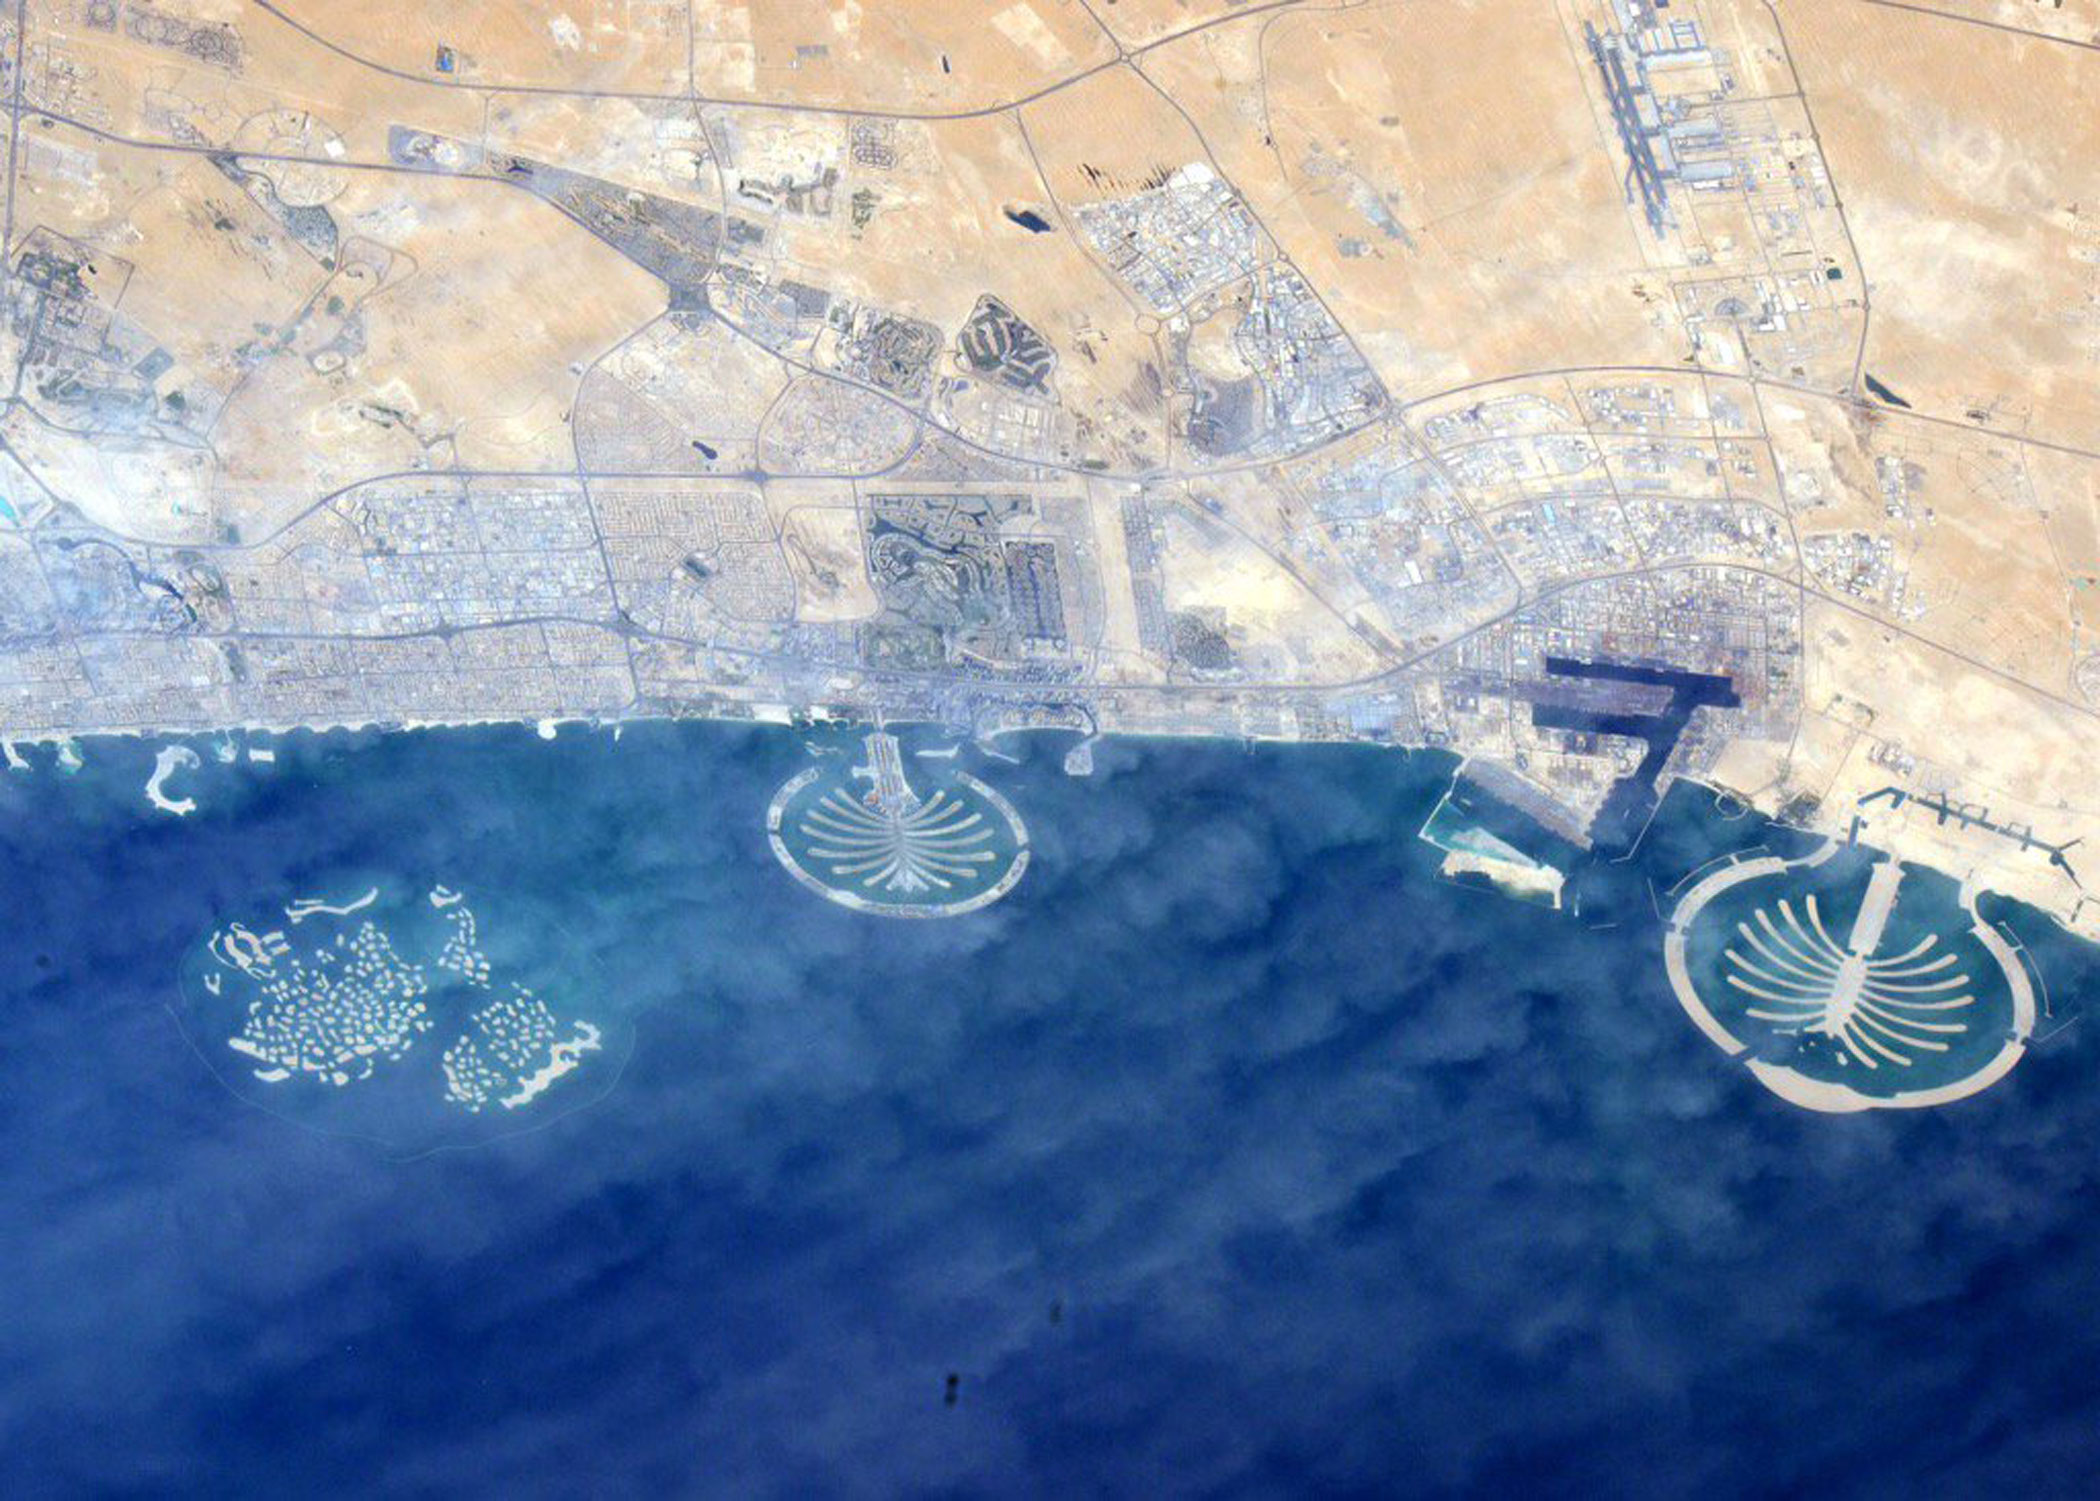 The artificial Palm and World Islands off the coast of Dubai as photographed by astronaut Kjell Lindgren aboard the International Space Station on Nov. 20, 2015.